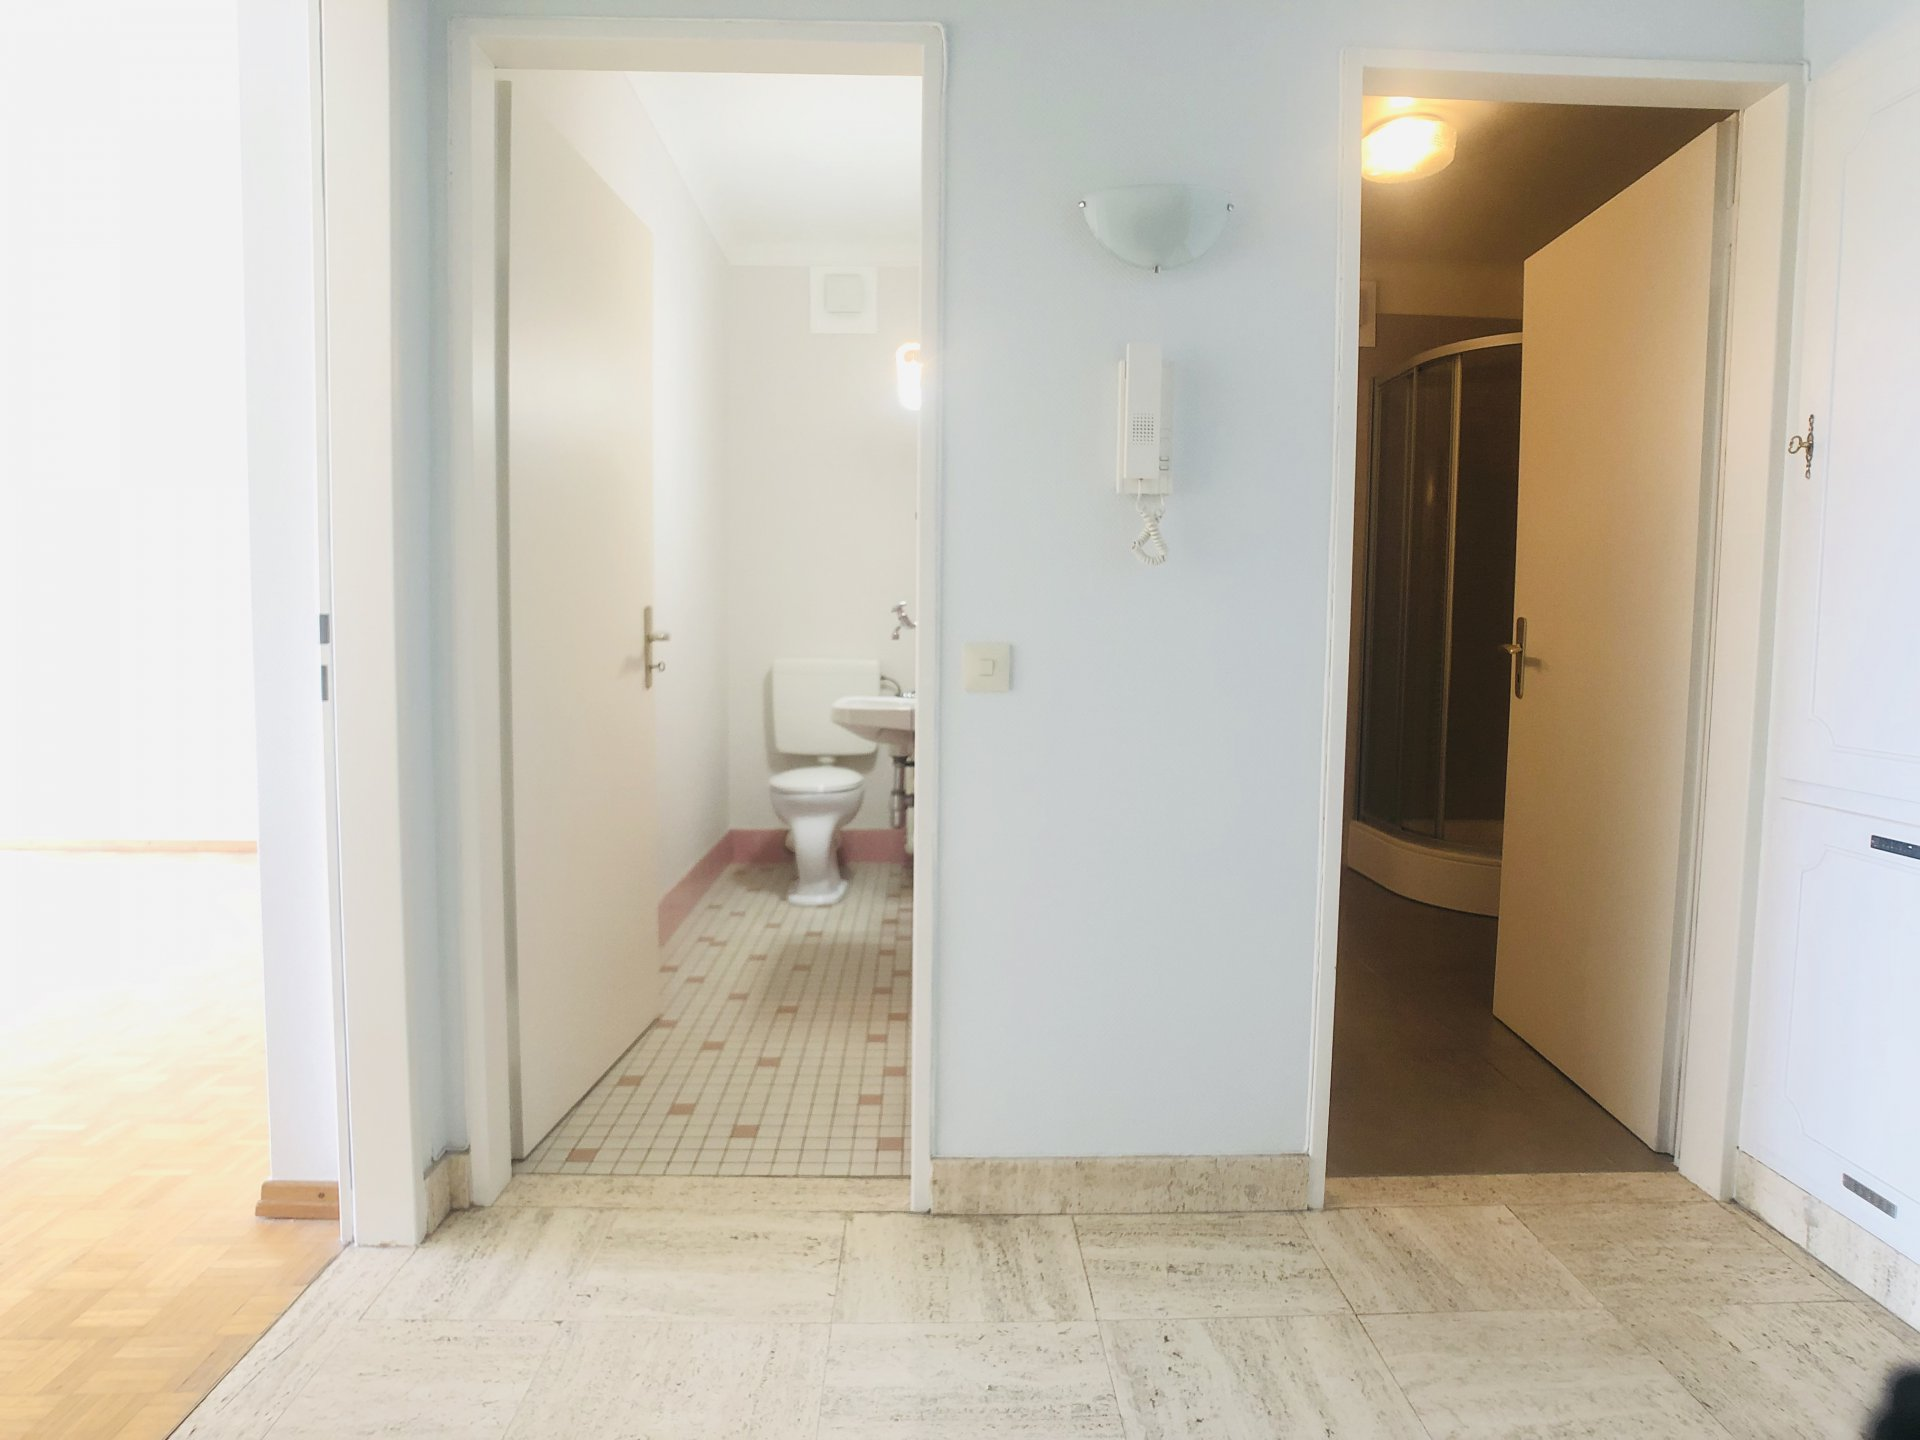 Location Appartement - Luxembourg Belair - Luxembourg